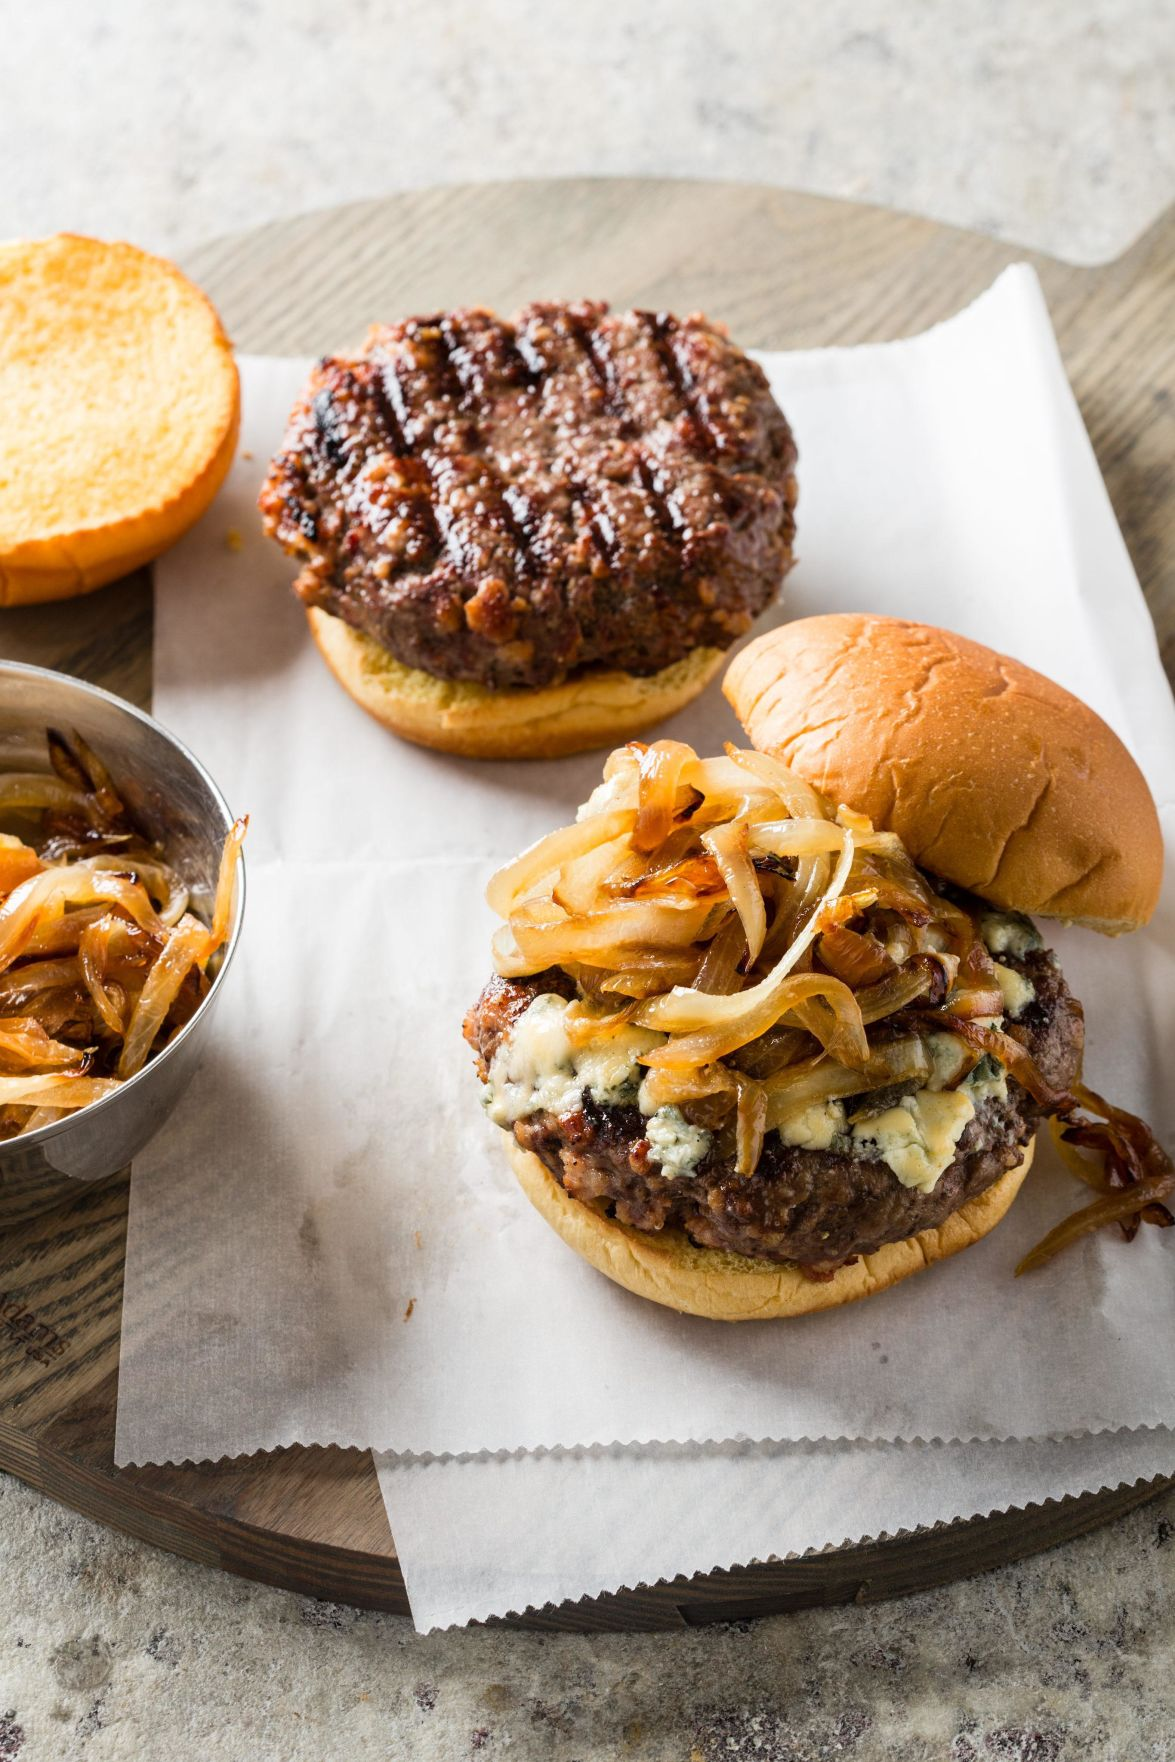 Stephen Fries: Go big with your burgers